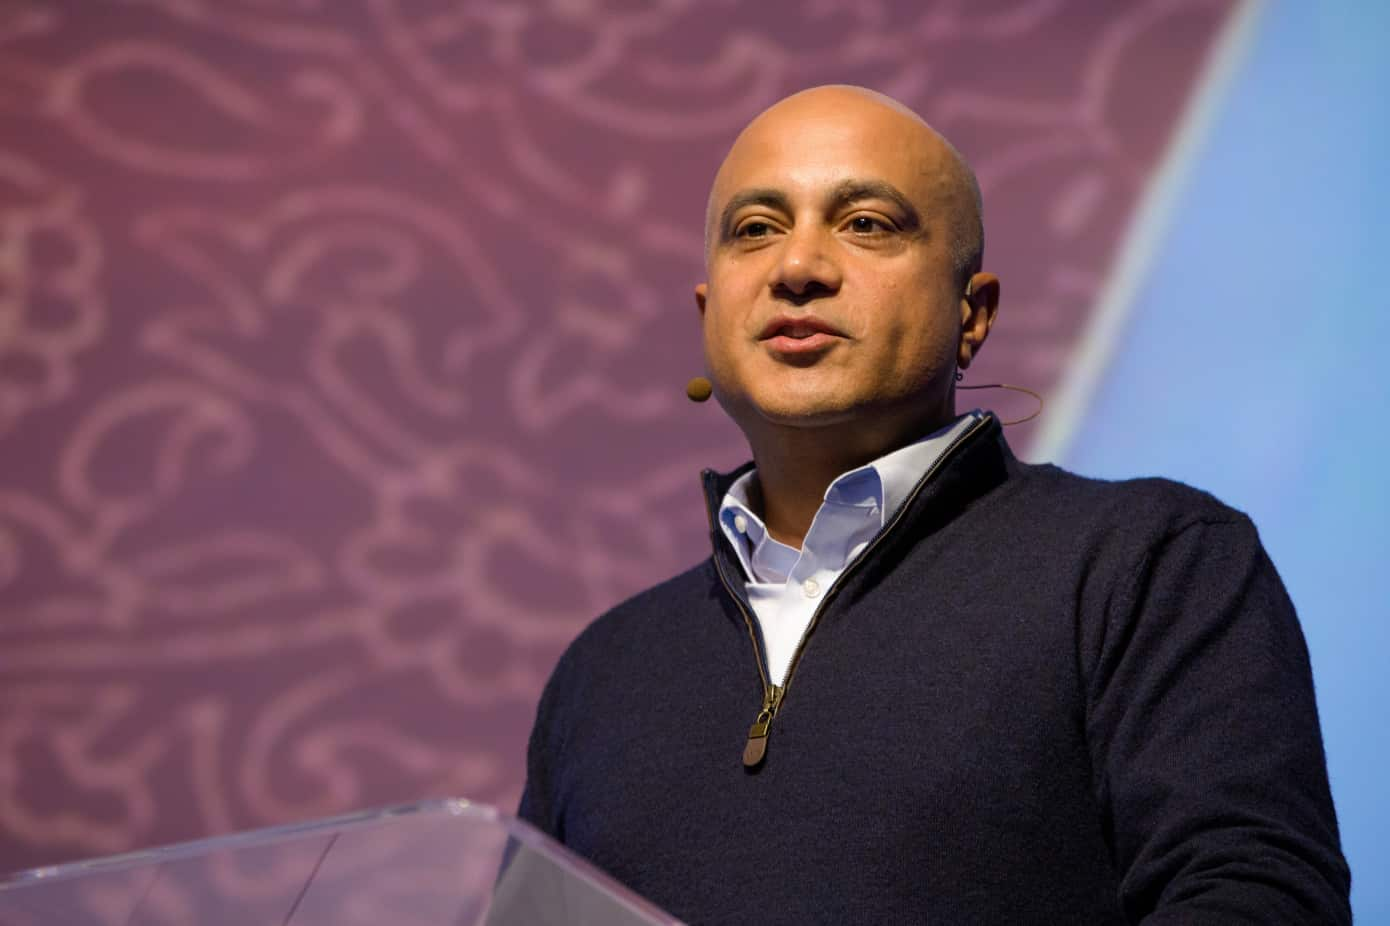 Udacity Looks For a New CEO, as Vishal Makhijani steps down